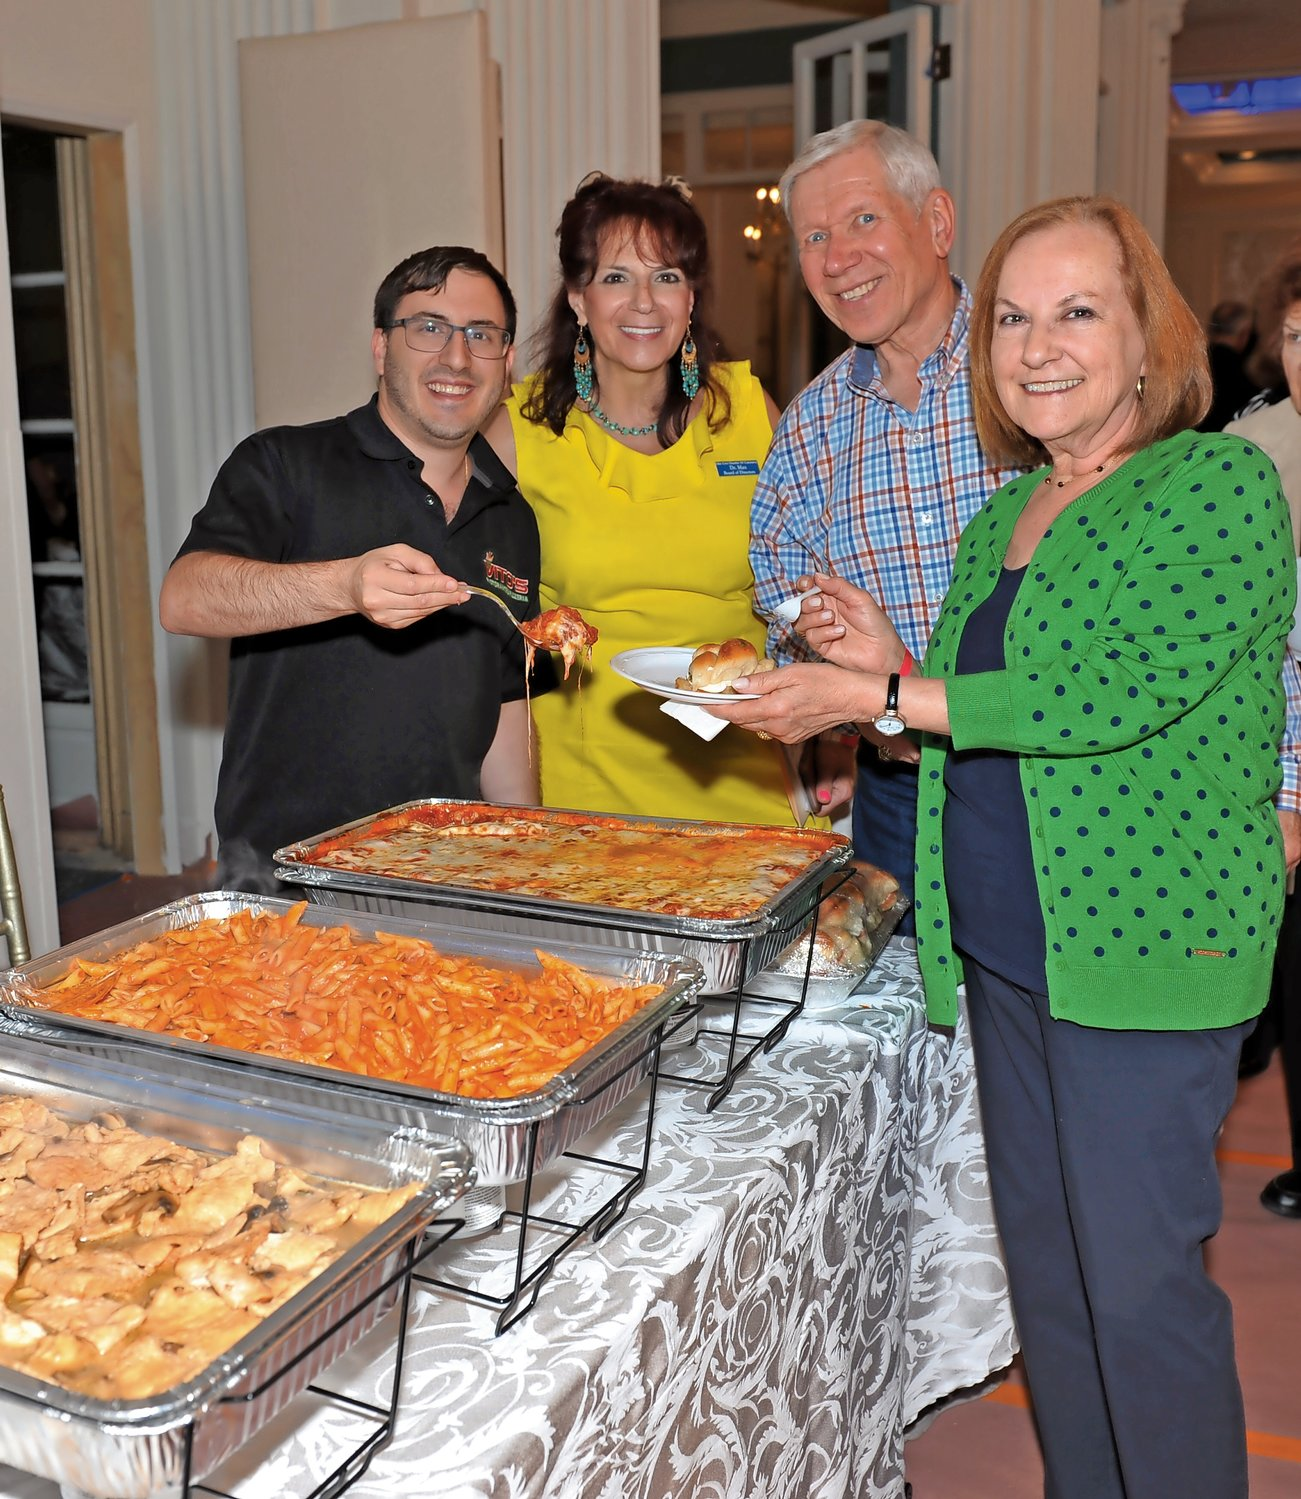 Event chair Dr. Maxine Cappel Mayreis and Tom and Evelyn Bass sampled homemade Italian fare from Vito's Ristorante.